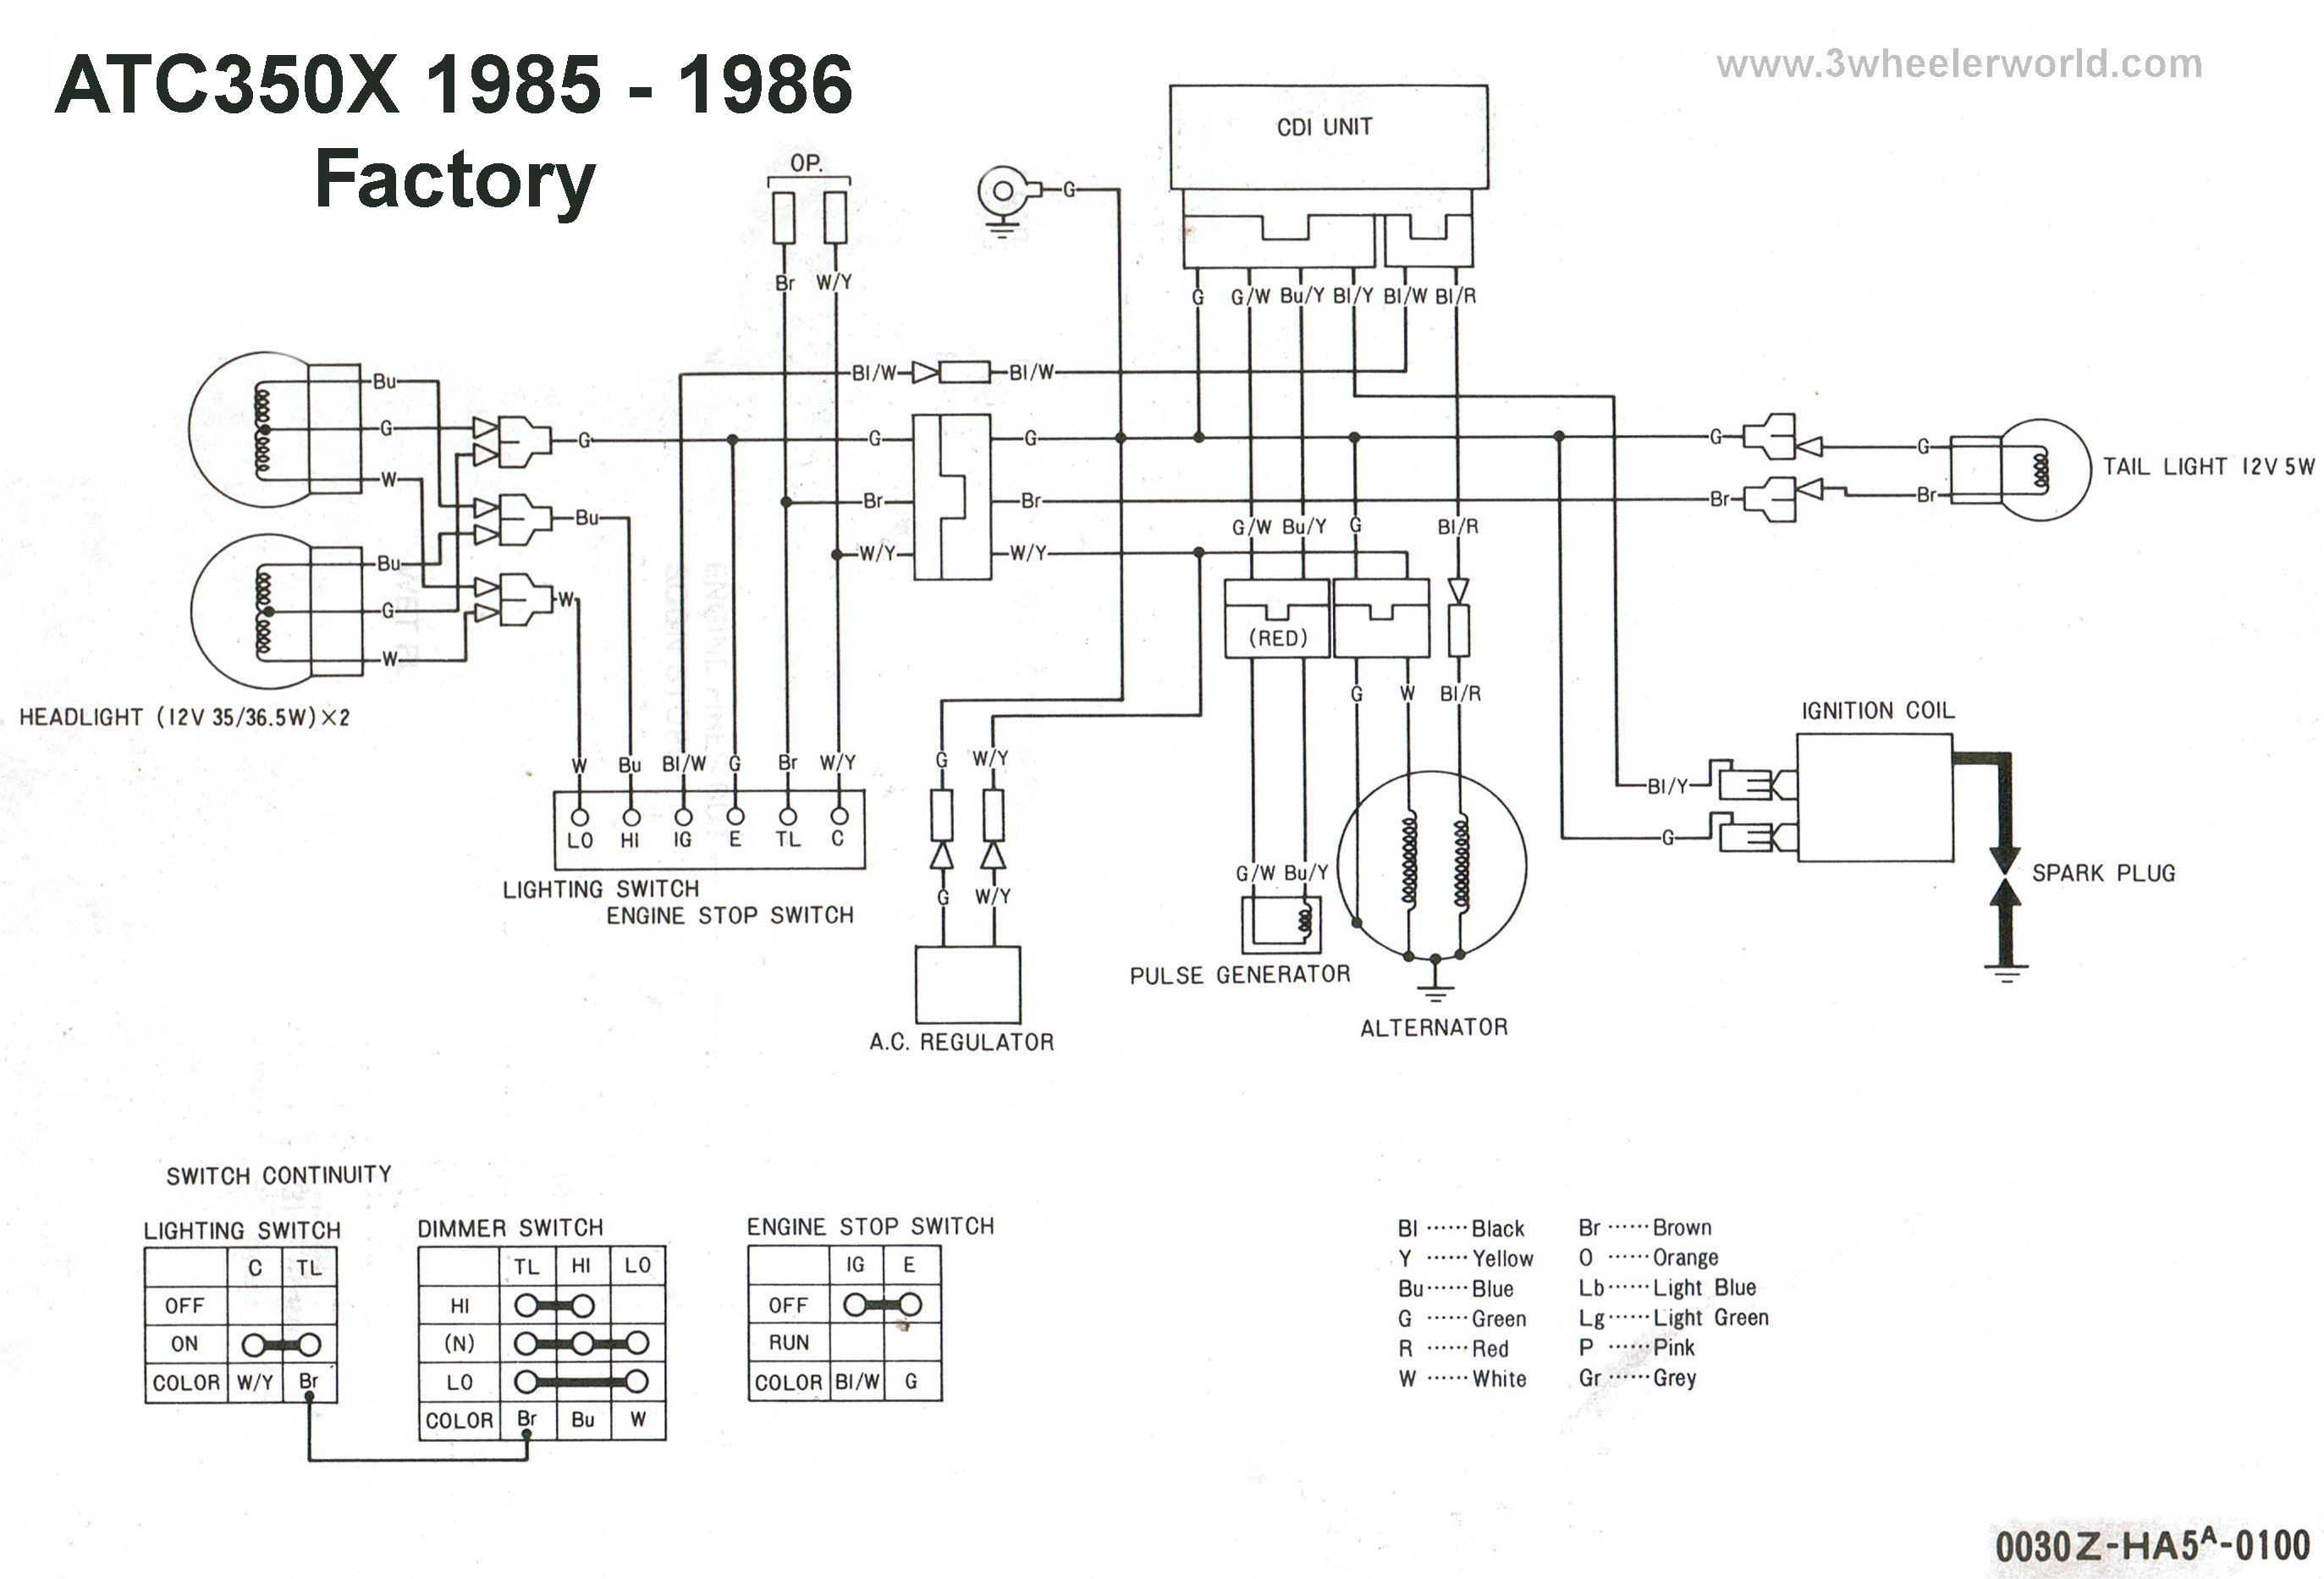 ATC350Xx85Thru86 honda 250x wiring diagram on honda download wirning diagrams 1993 honda fourtrax 300 wiring diagram at gsmx.co